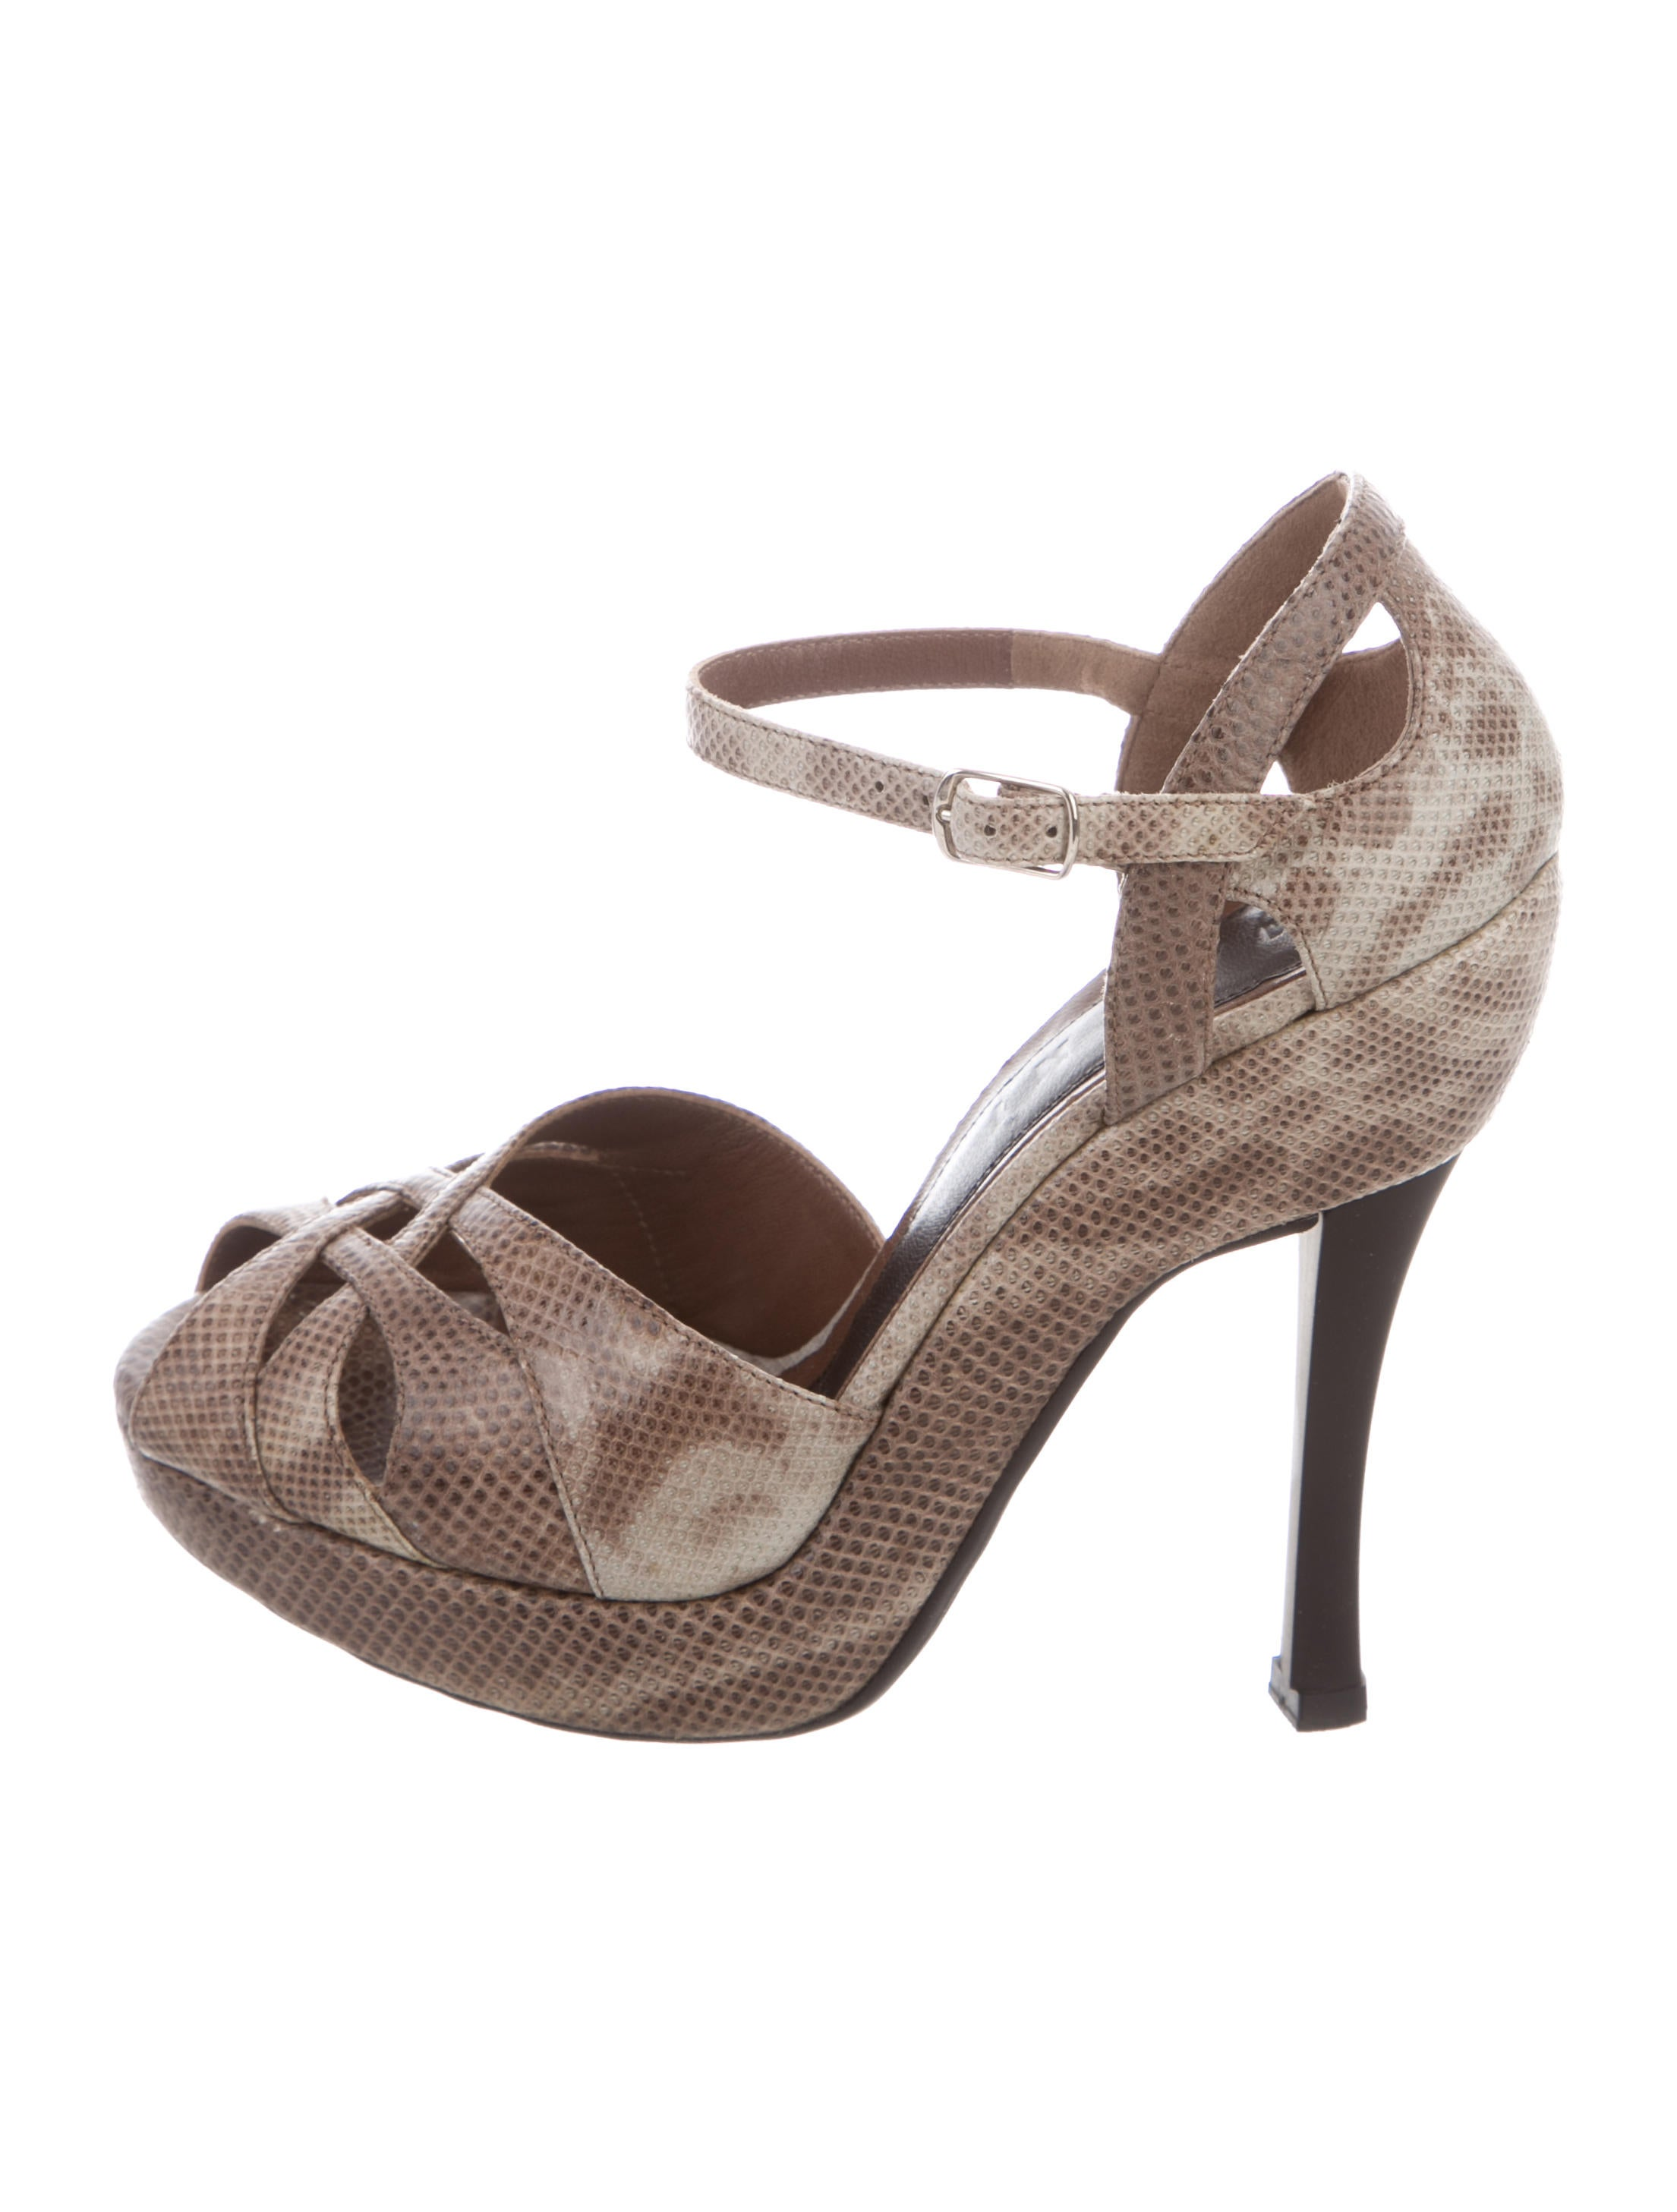 Marni Karung Ankle Strap Sandals Inexpensive cheap price 0ShKbCTq